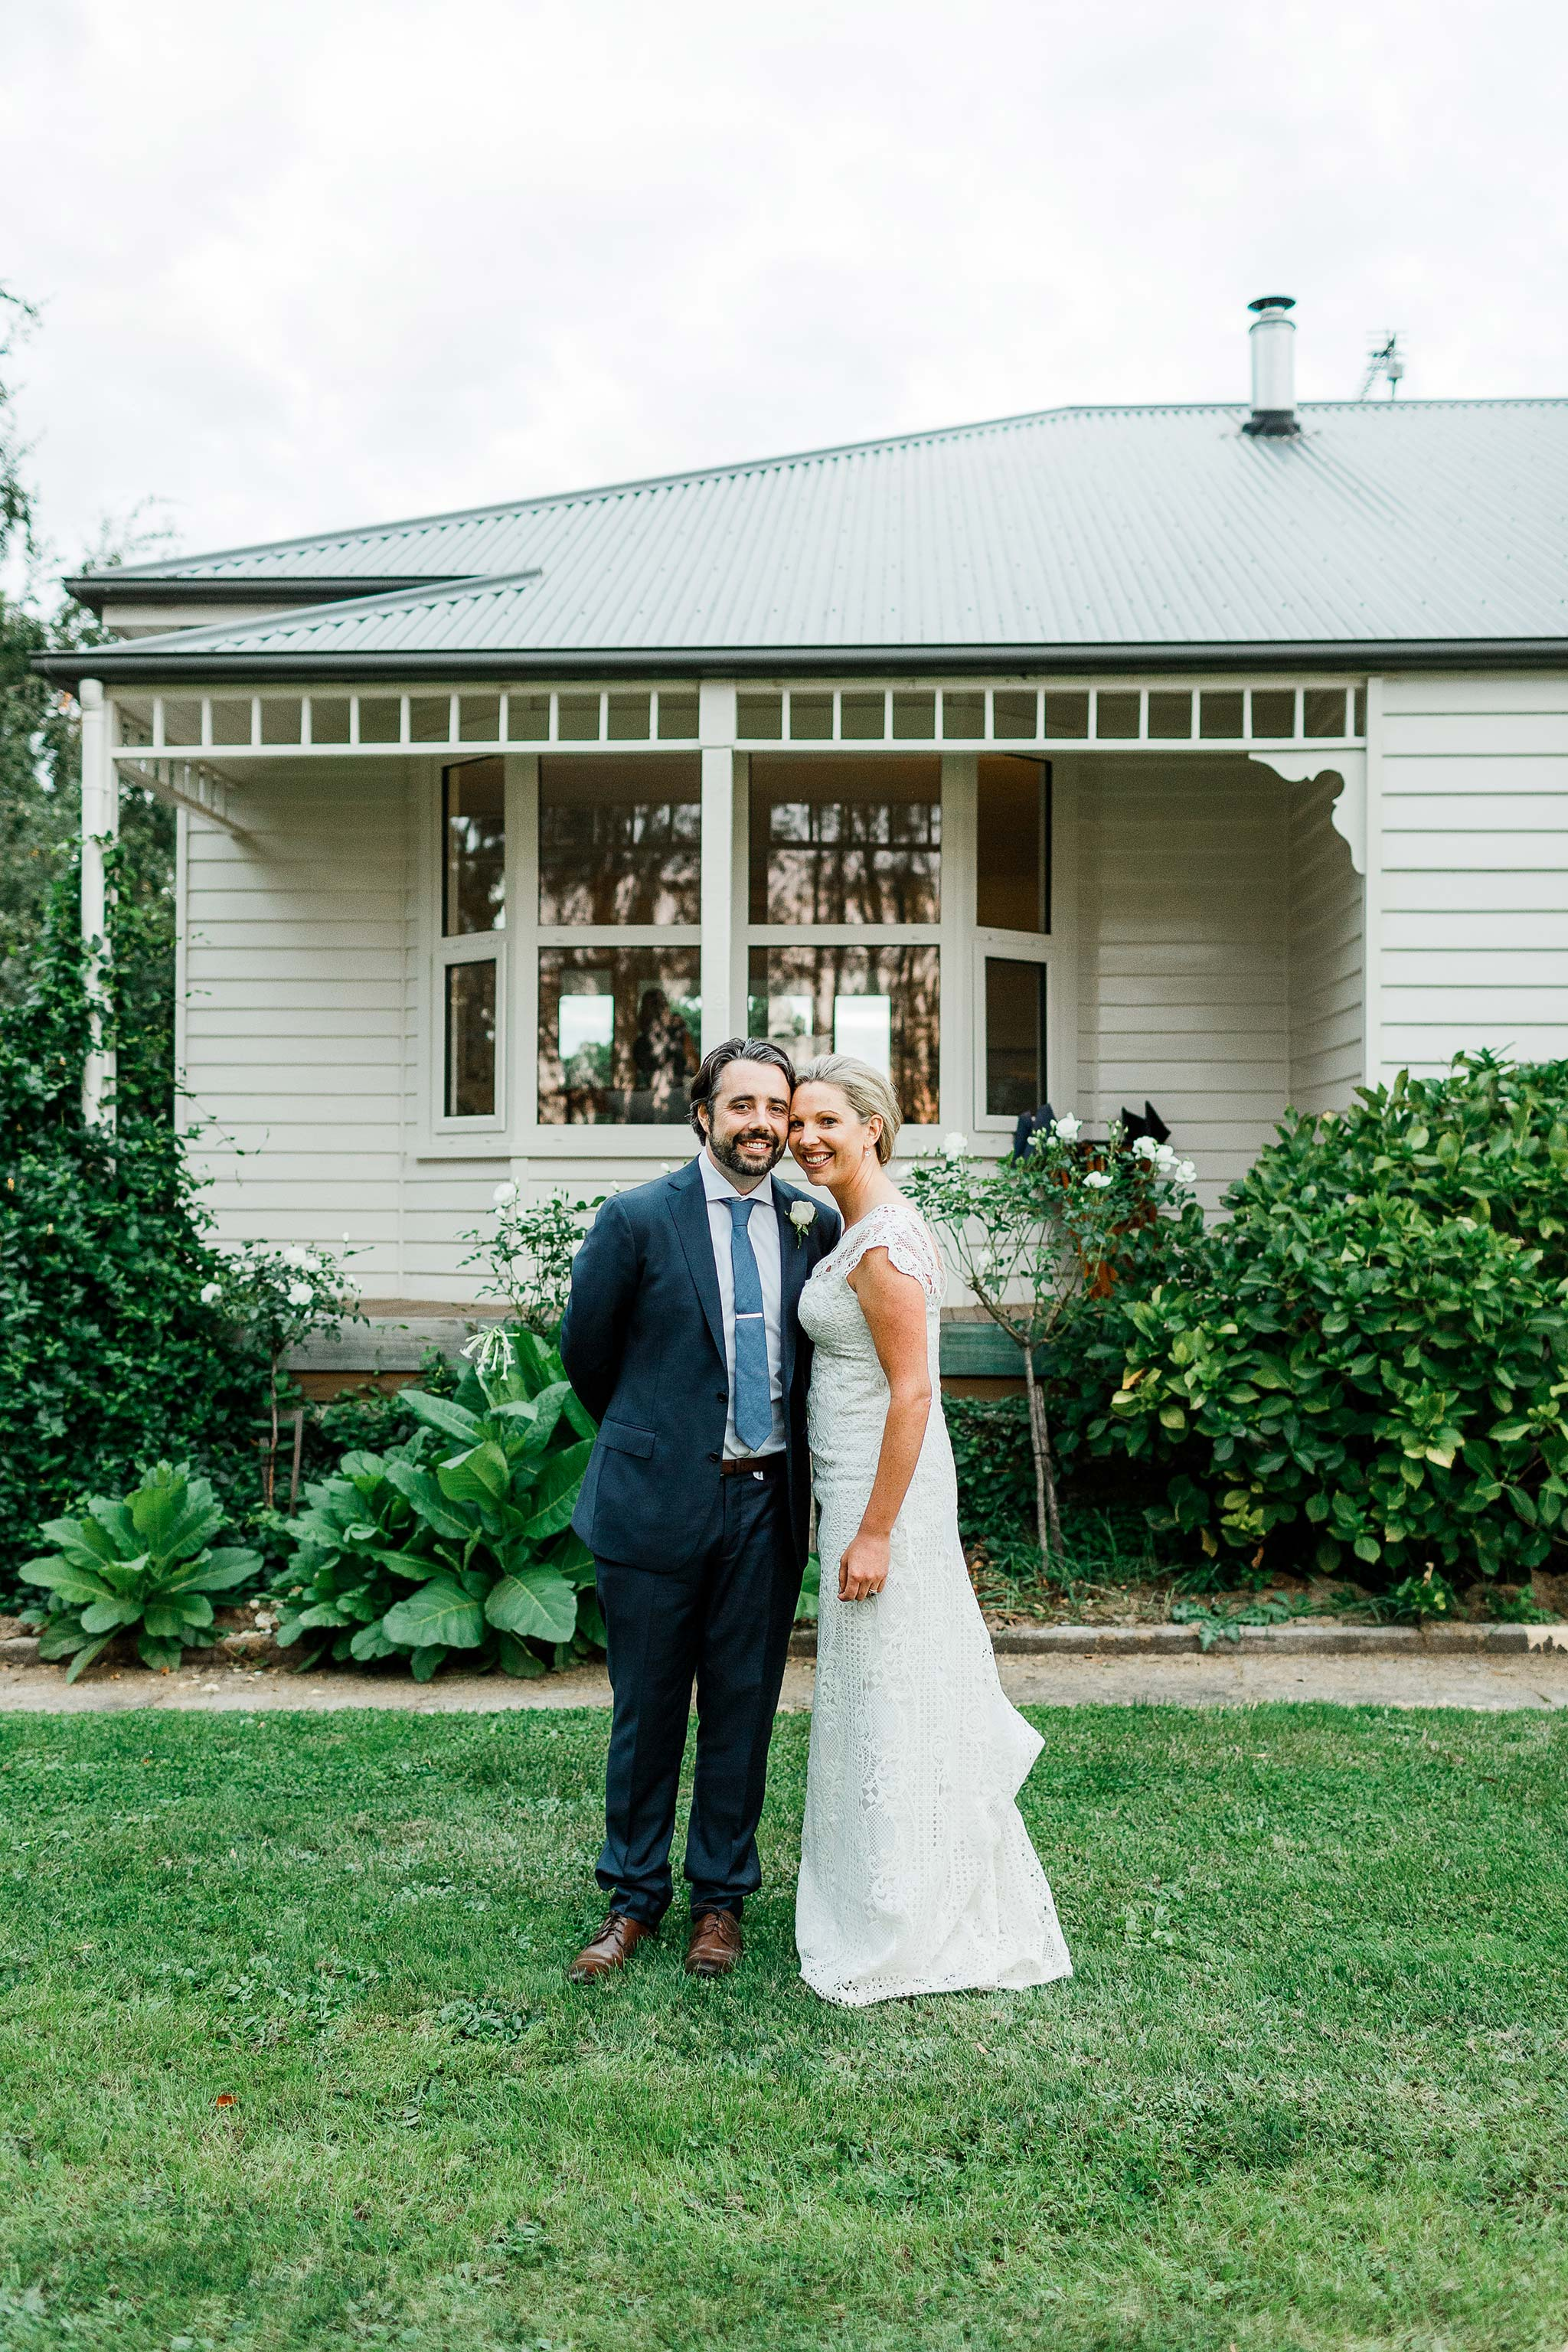 Tasmania-Davenport-Farm-Wedding-house-portrait